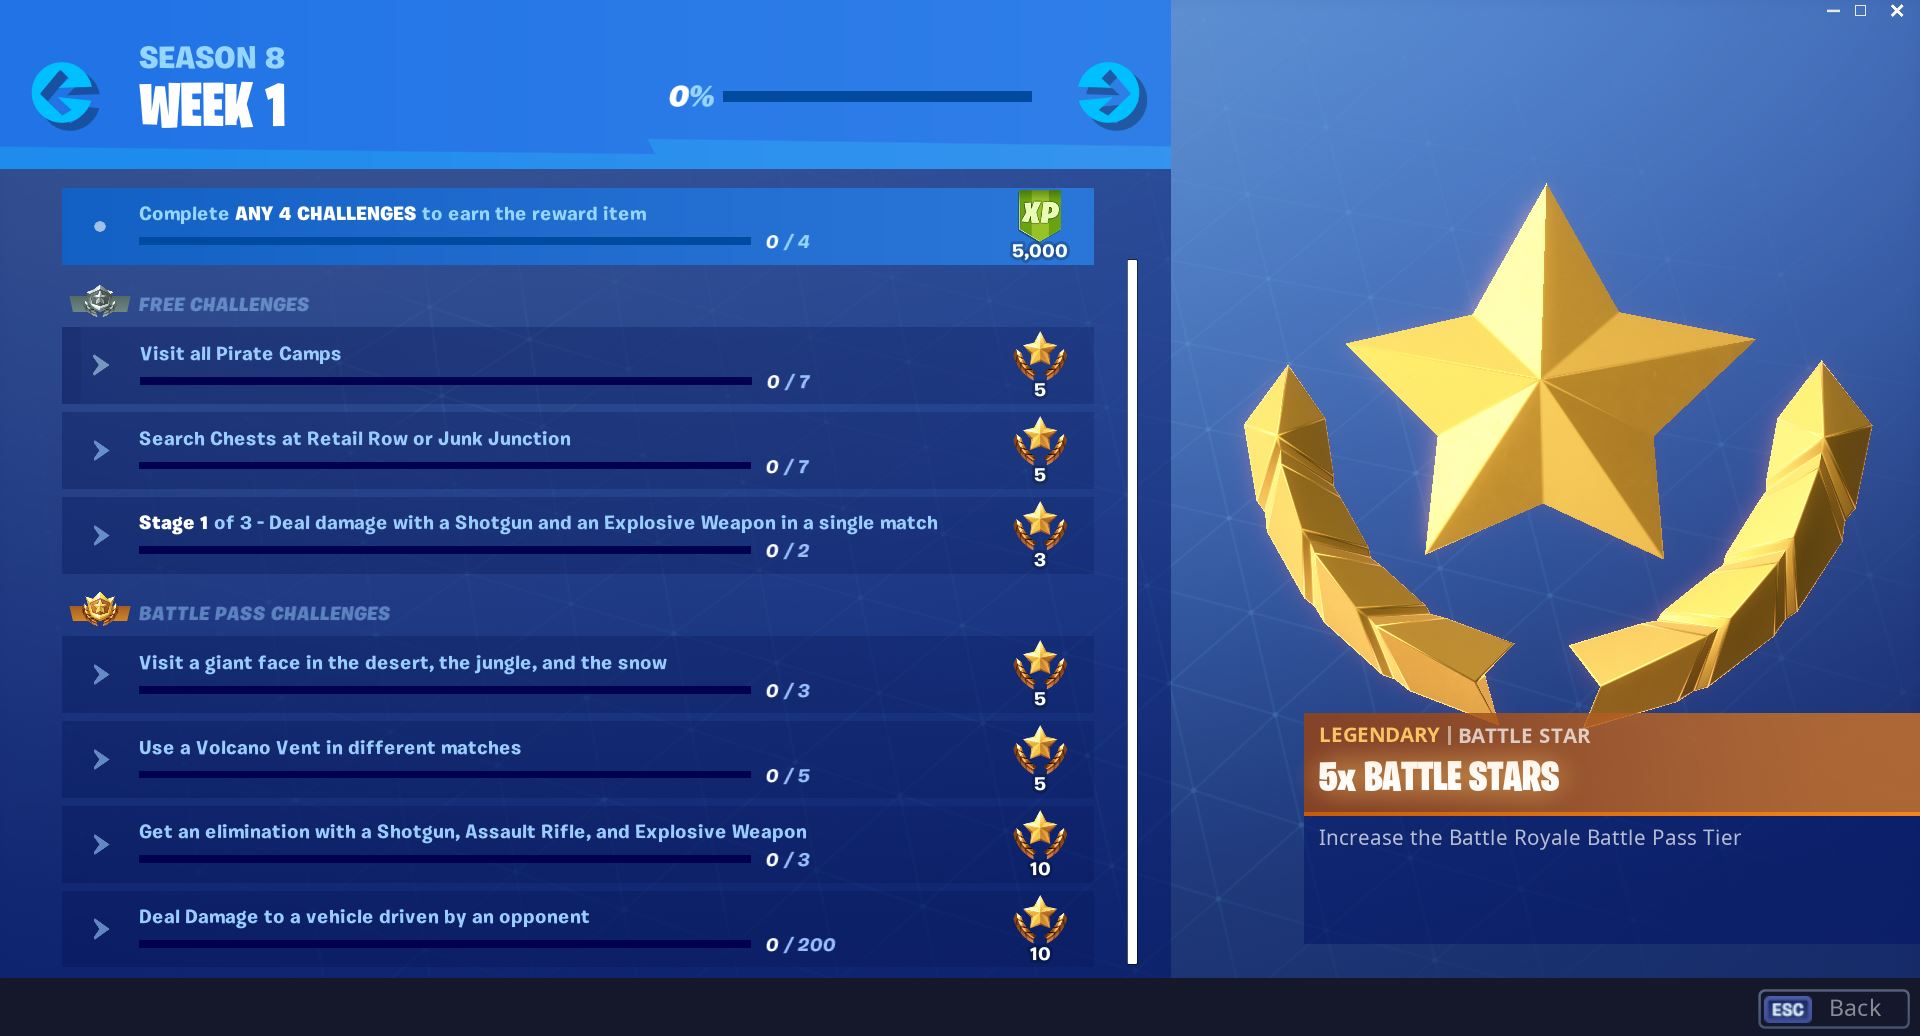 Fortnite Season 8, Week 1 Challenges